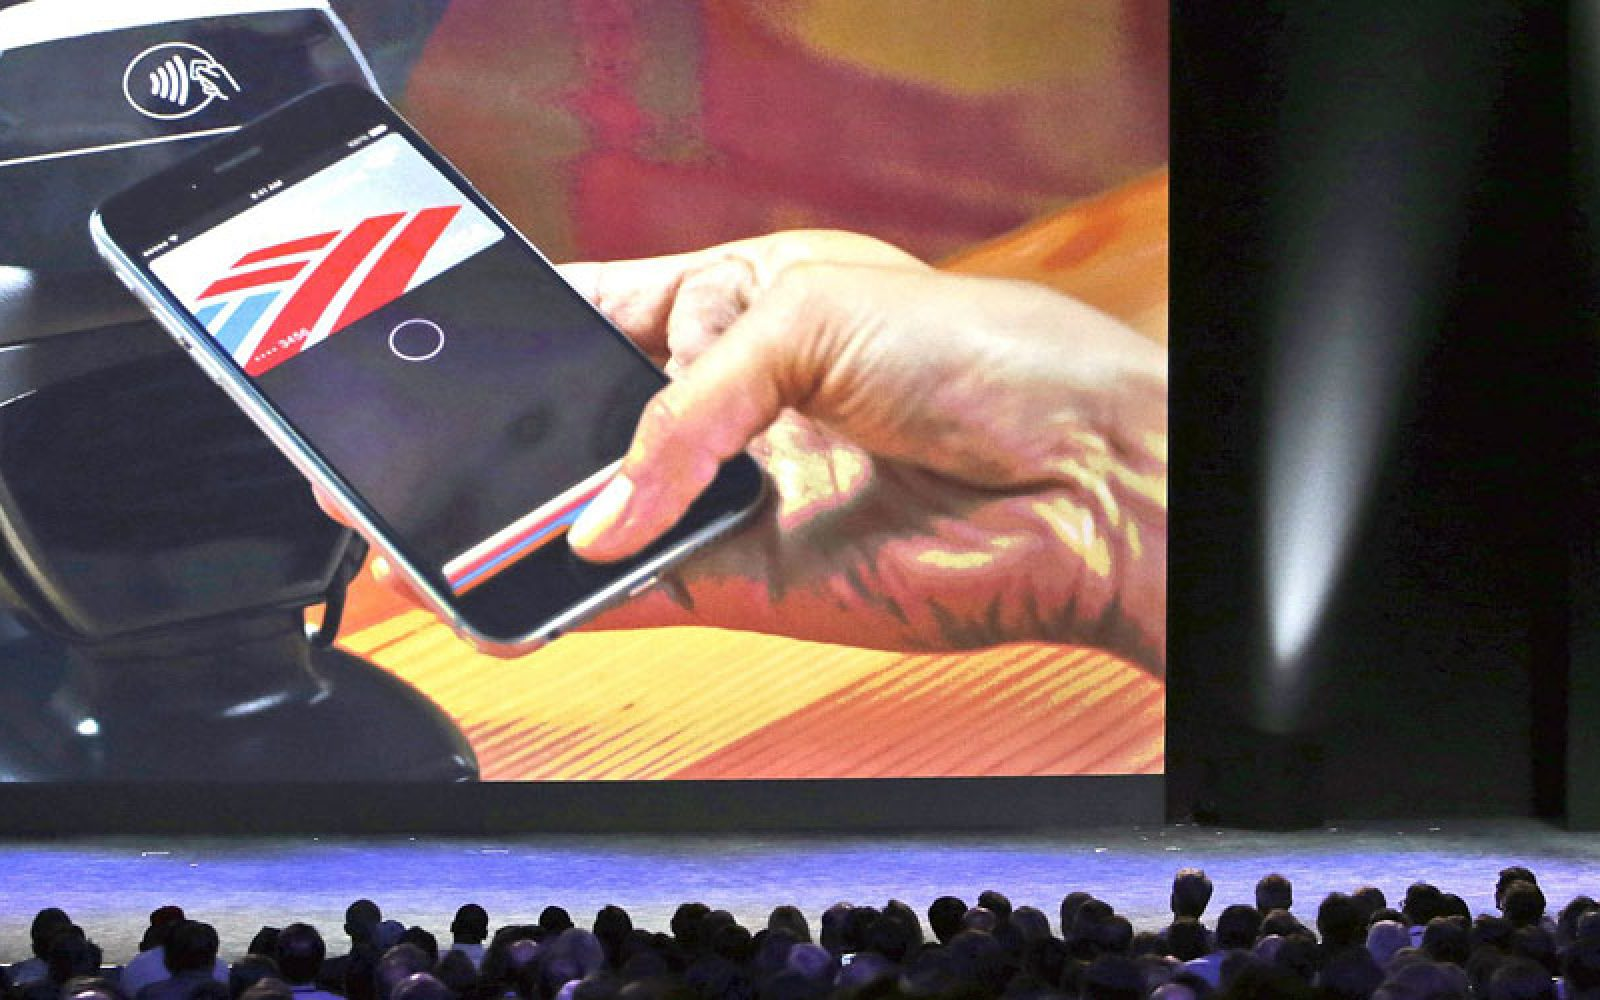 Australian banks demand access to NFC chip on iPhone to